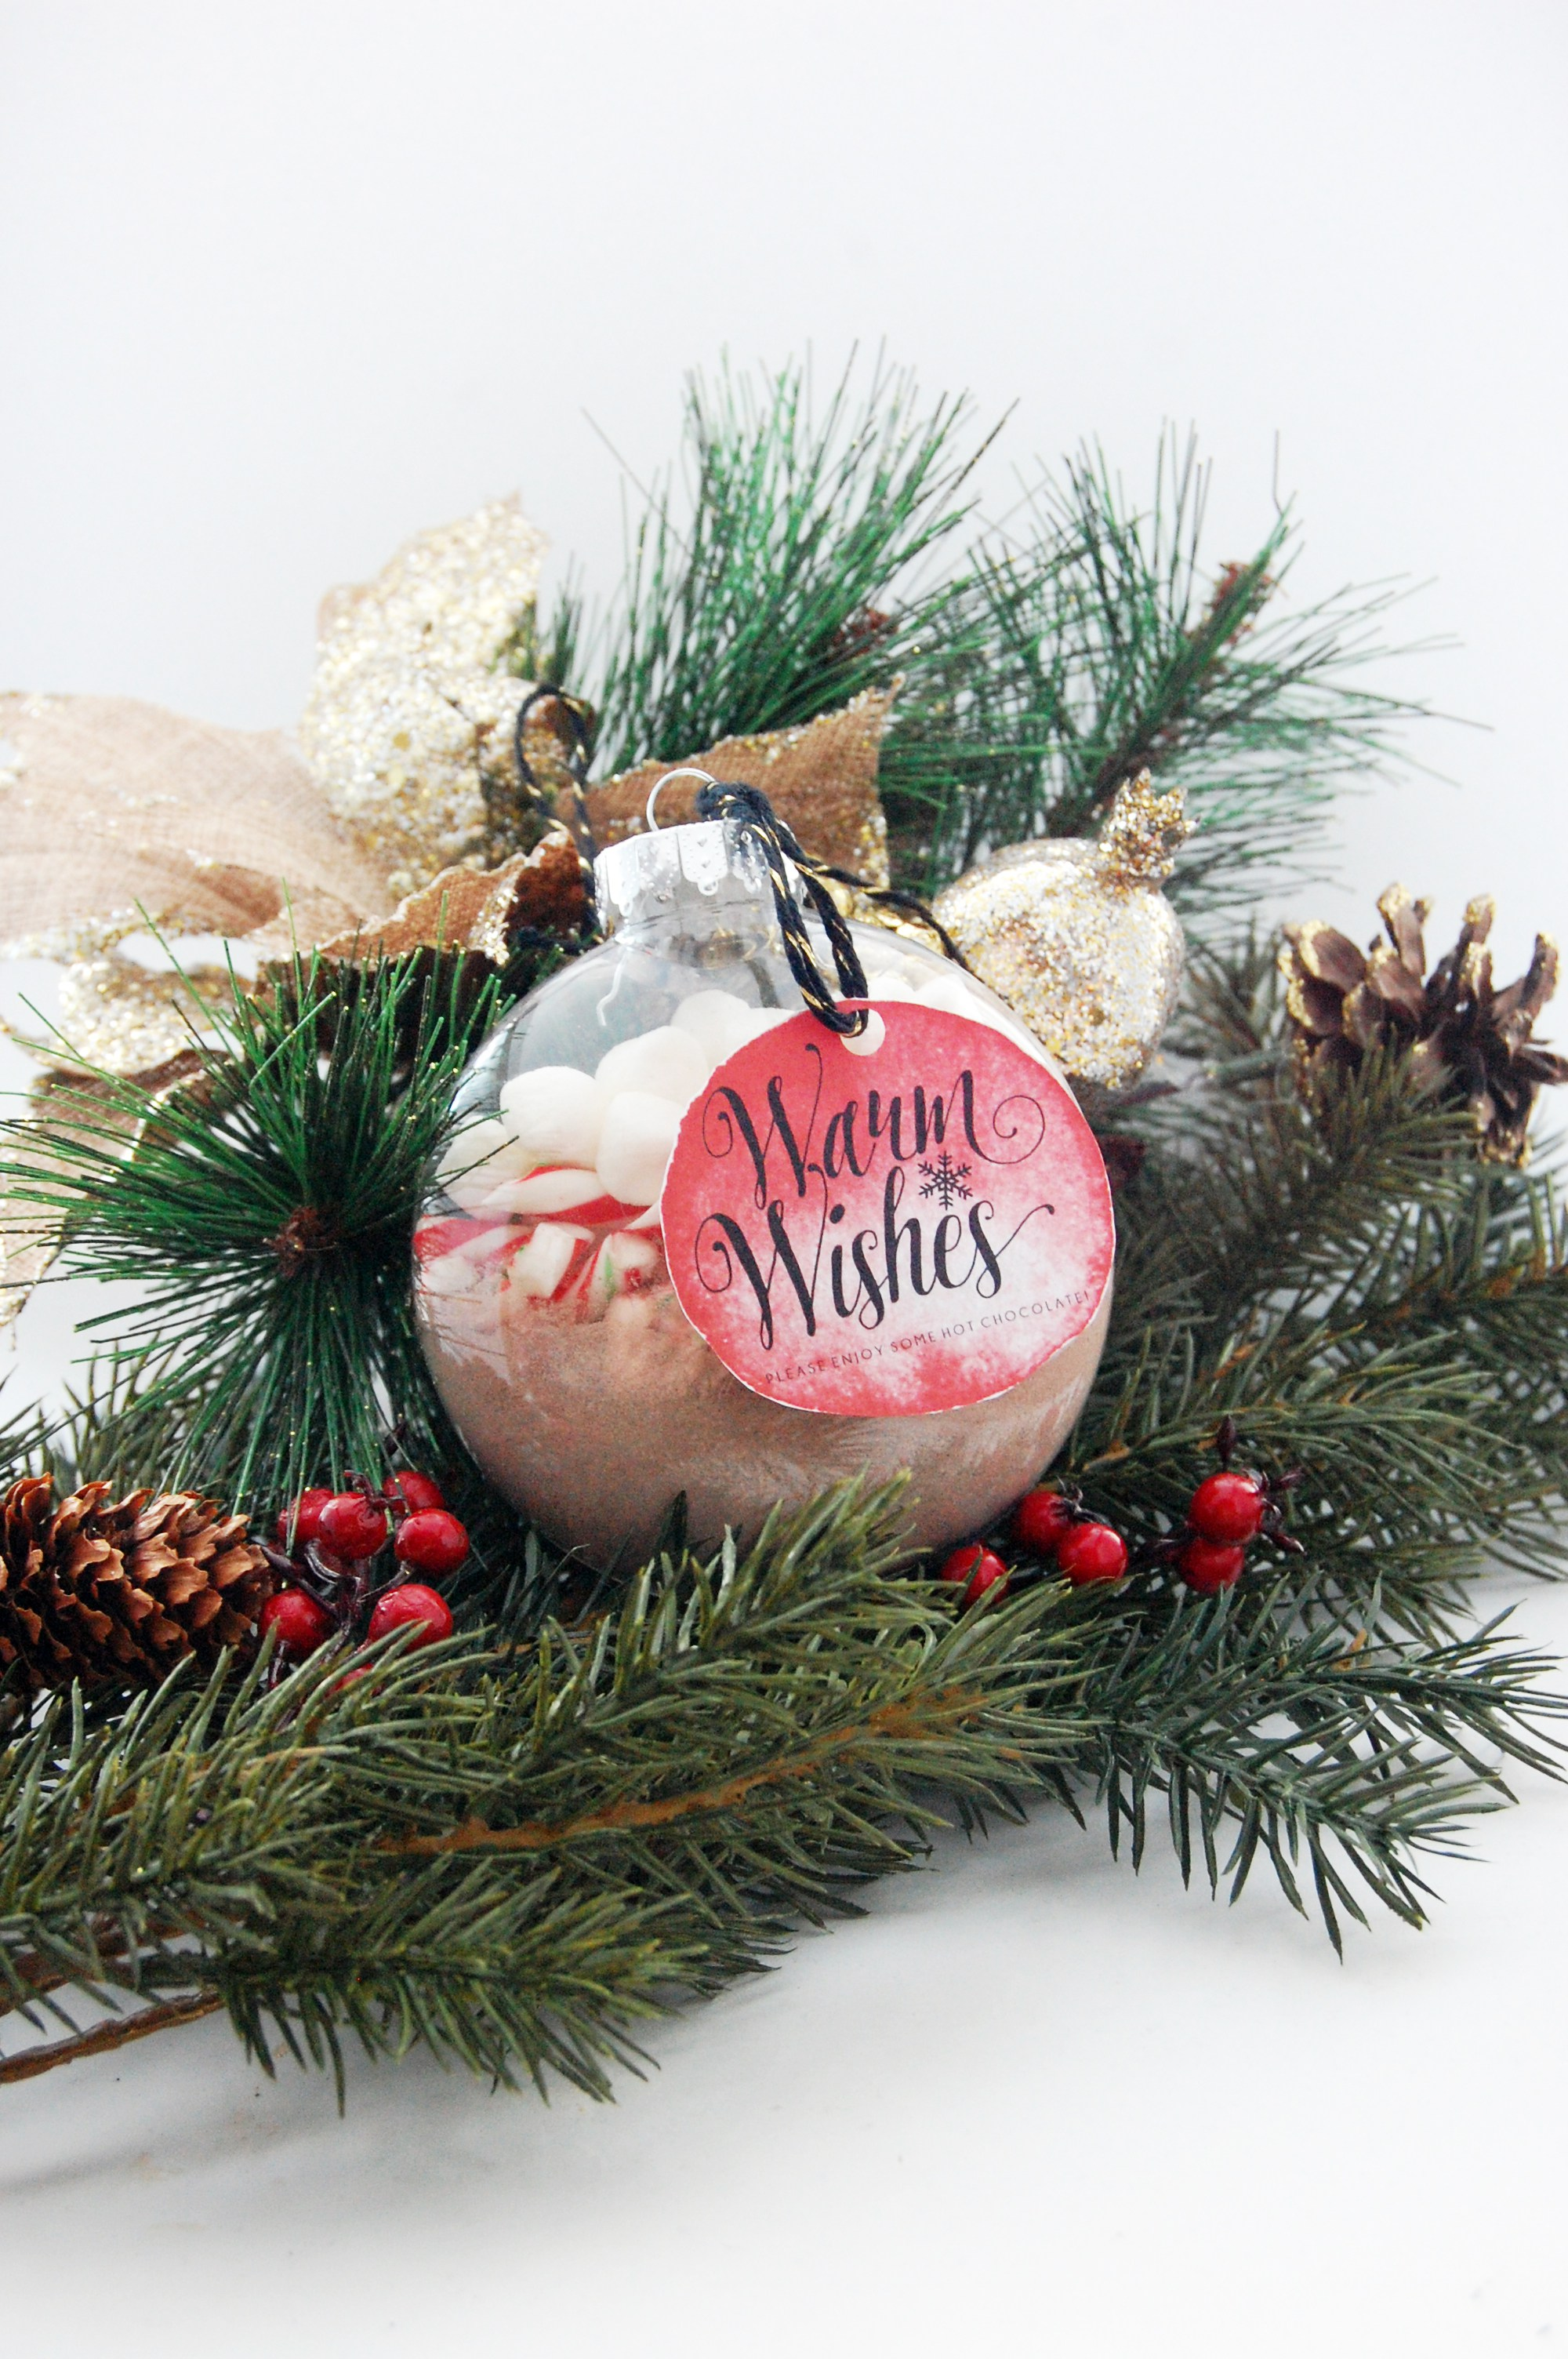 DIY heart warming Christmas favors inside ornaments